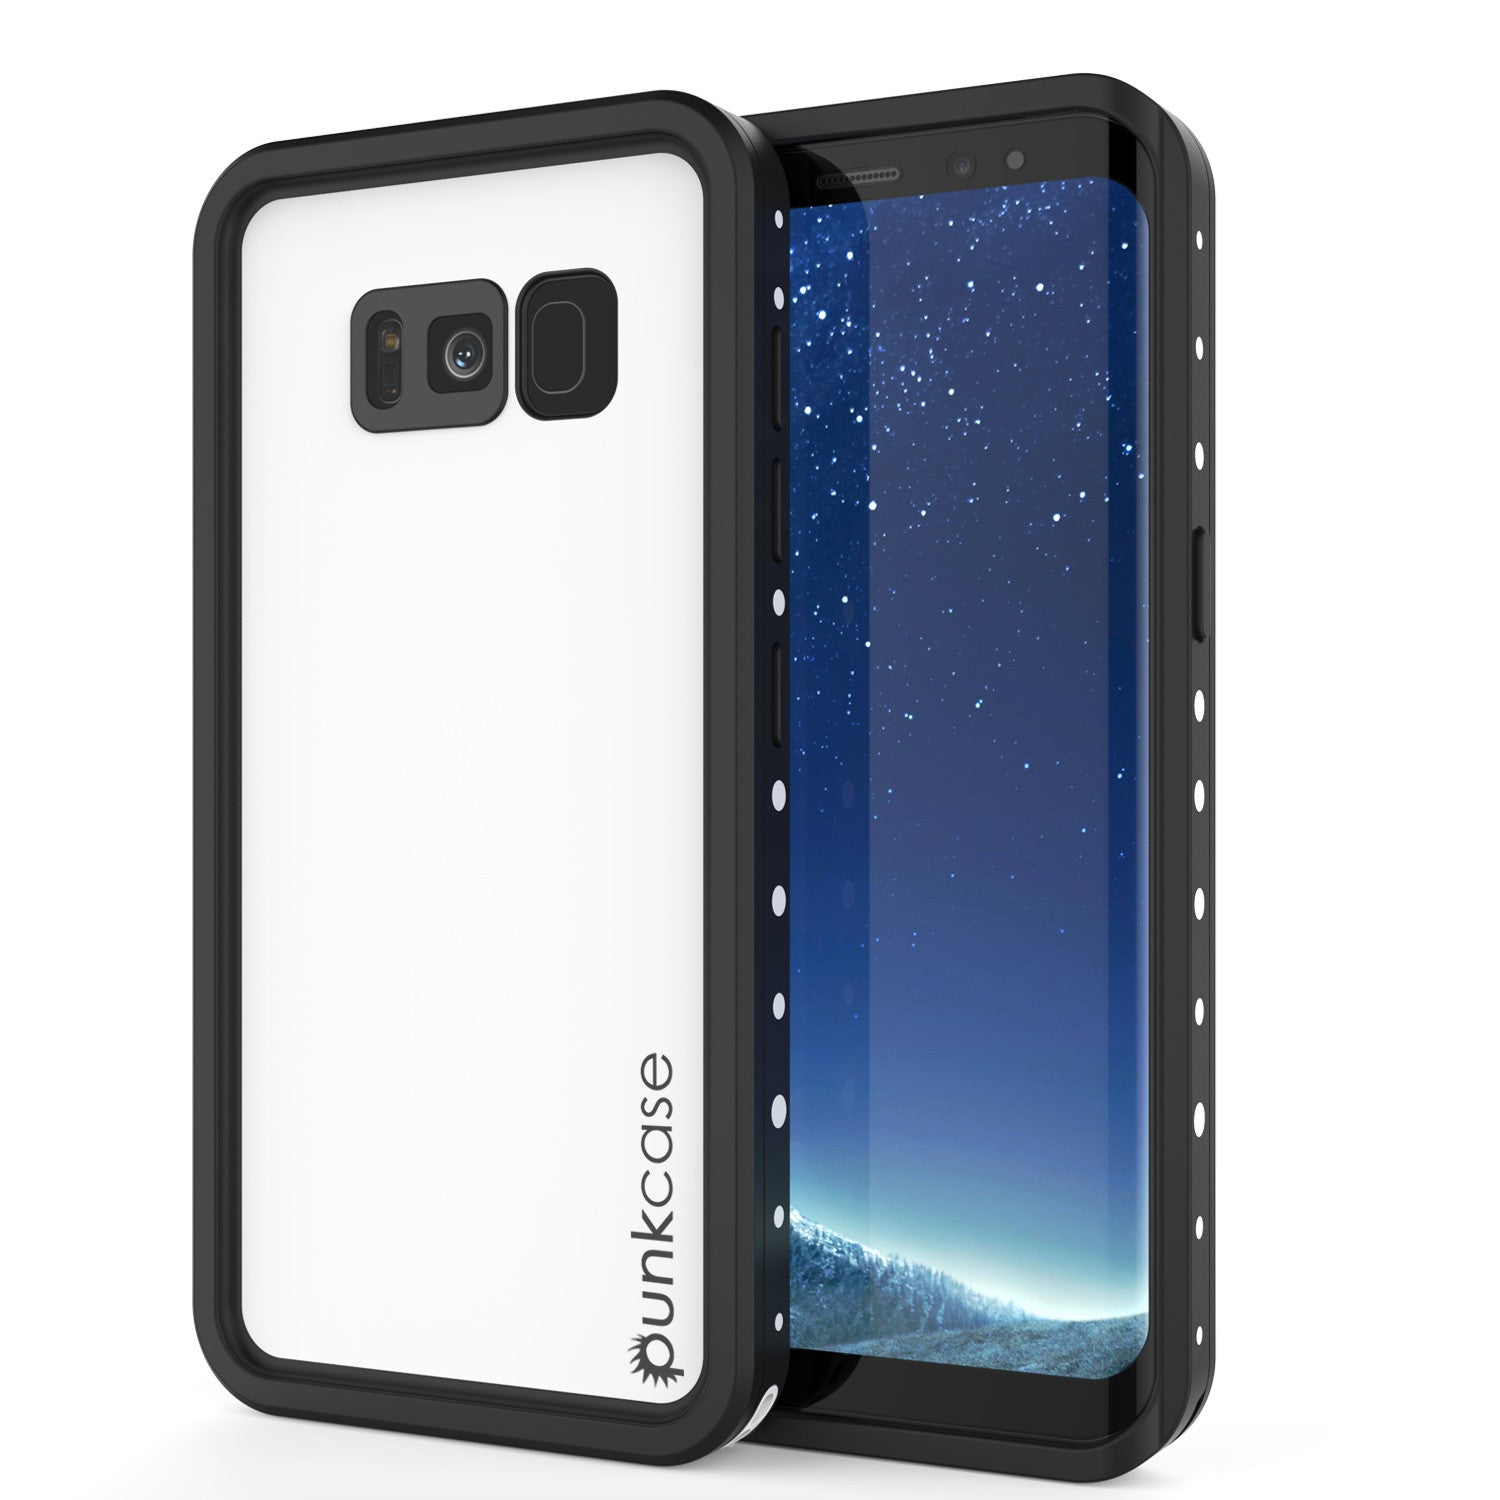 ***Pre-Order** Galaxy S8 Waterproof Case, Punkcase StudStar White Thin 6.6ft Underwater IP68 Shock/Snow Proof